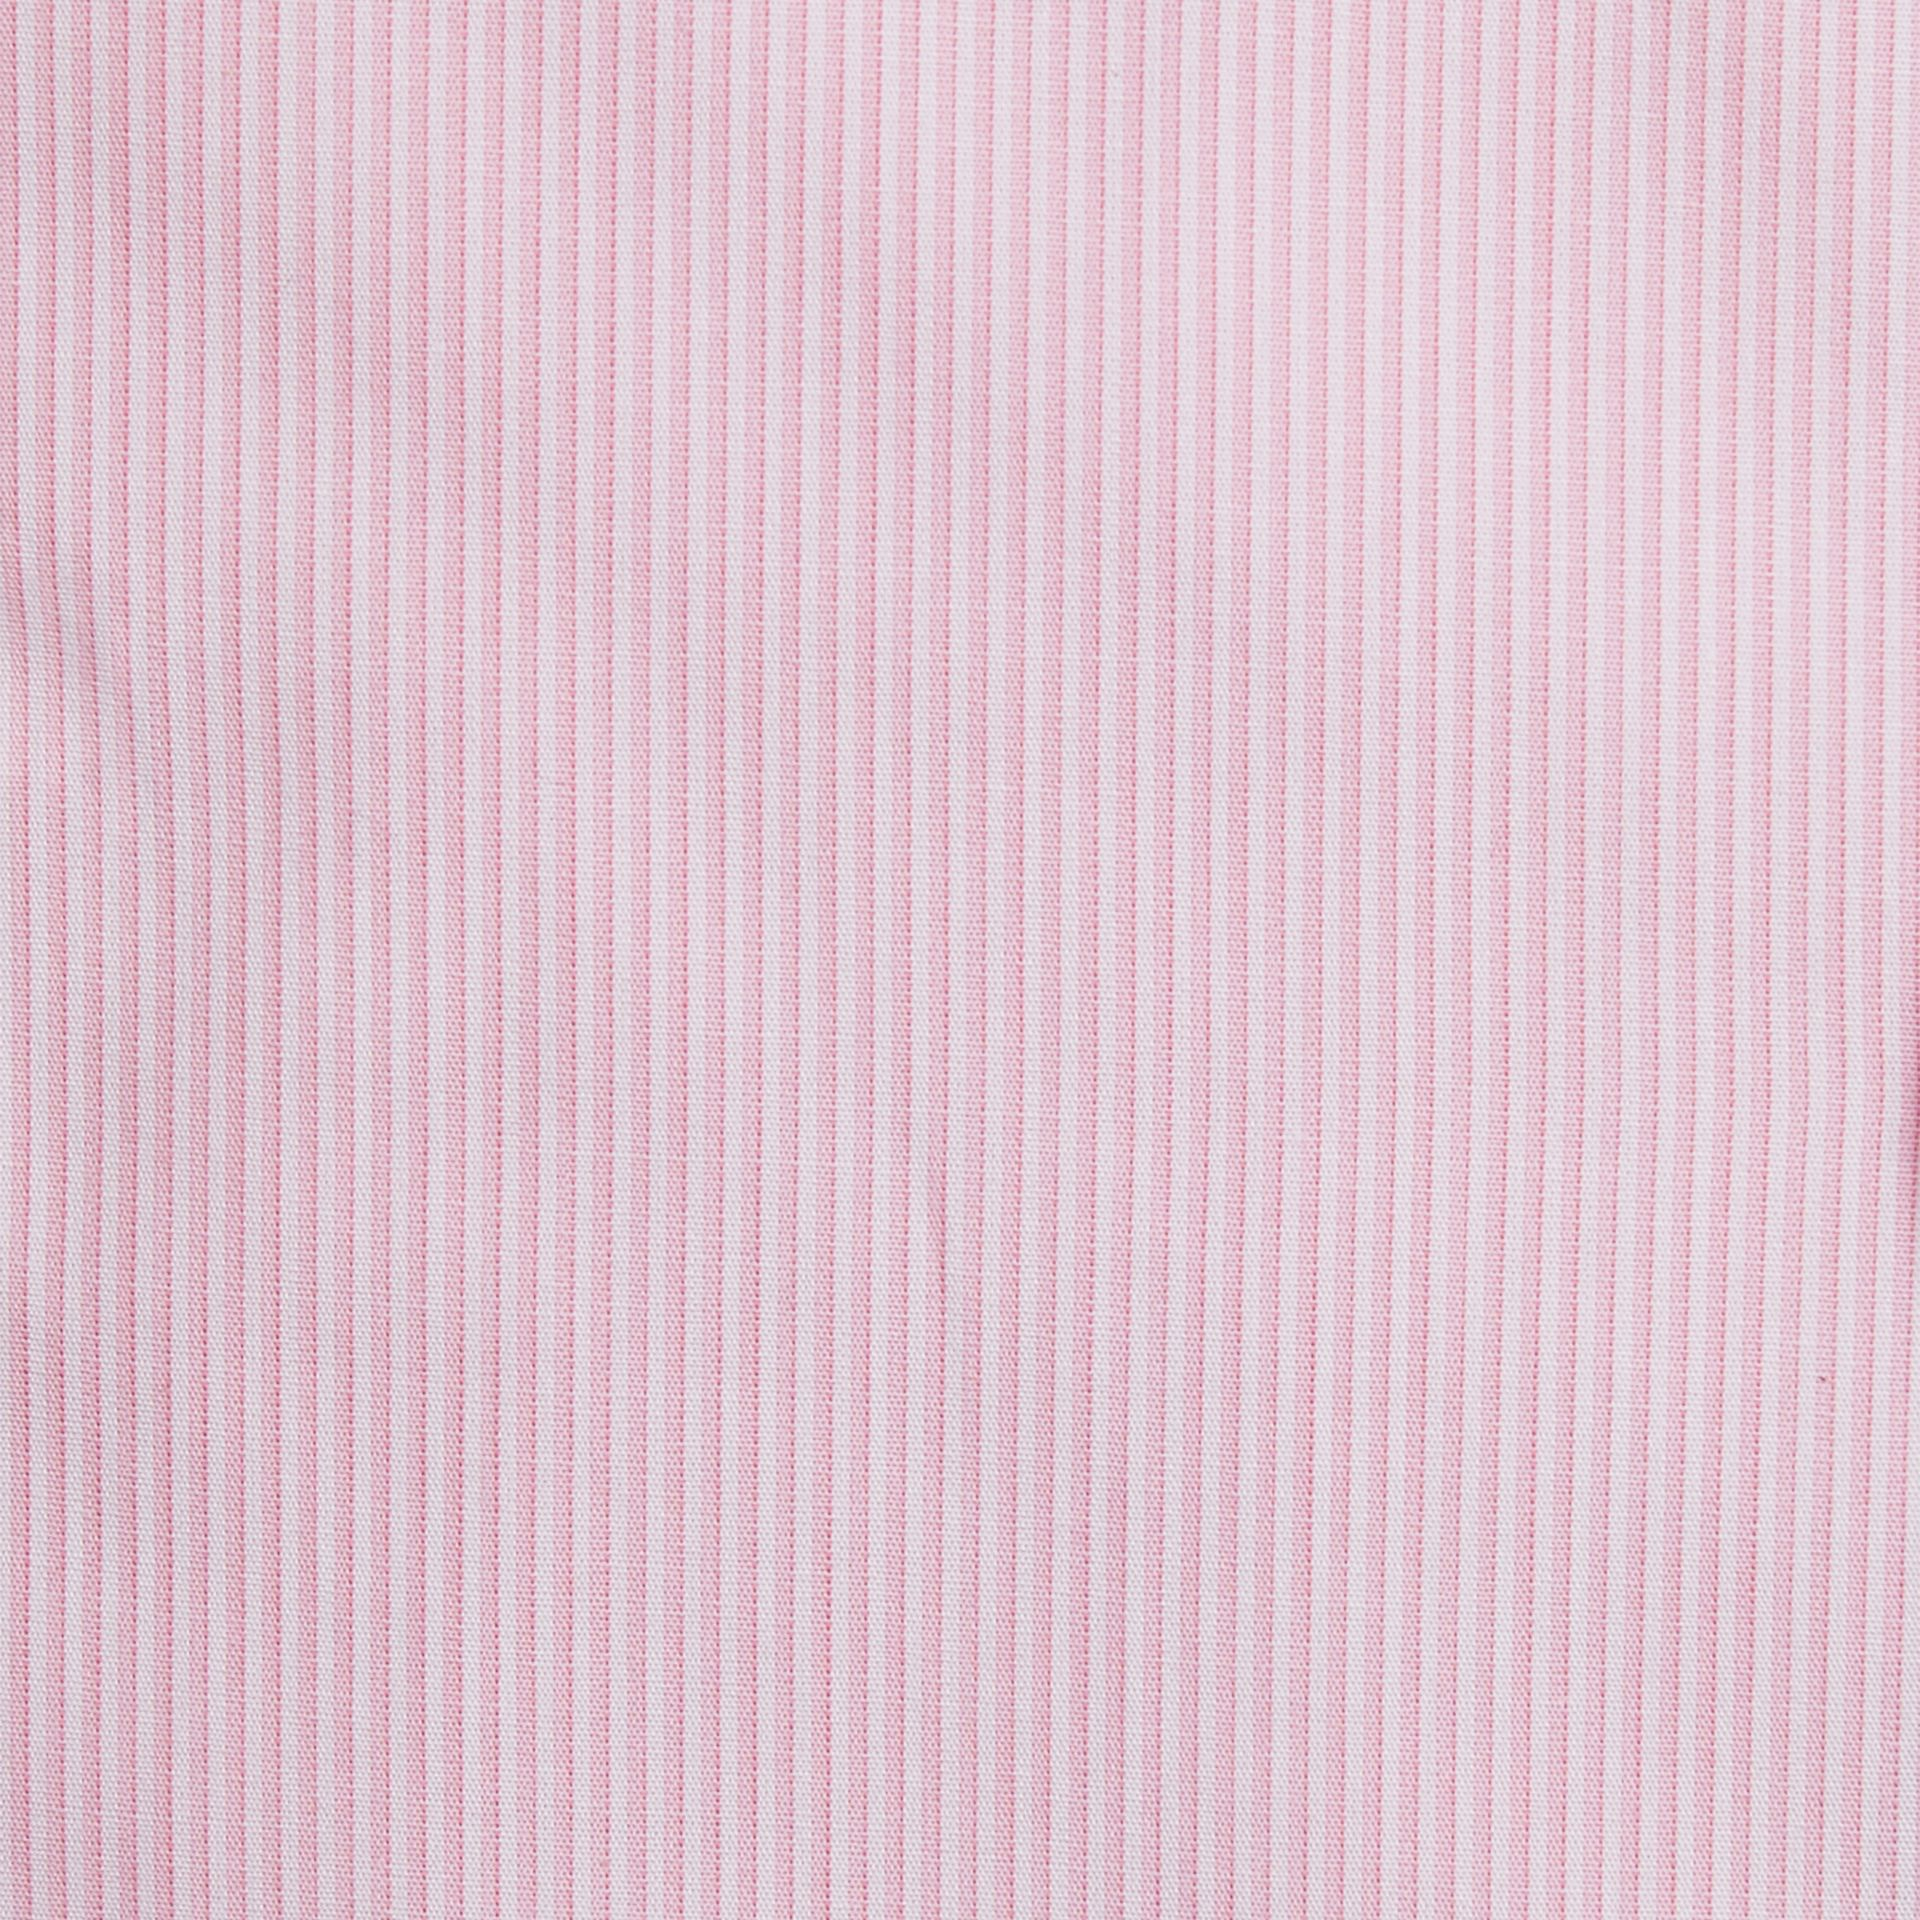 City pink Slim Fit Striped Cotton Poplin Shirt City Pink - gallery image 2